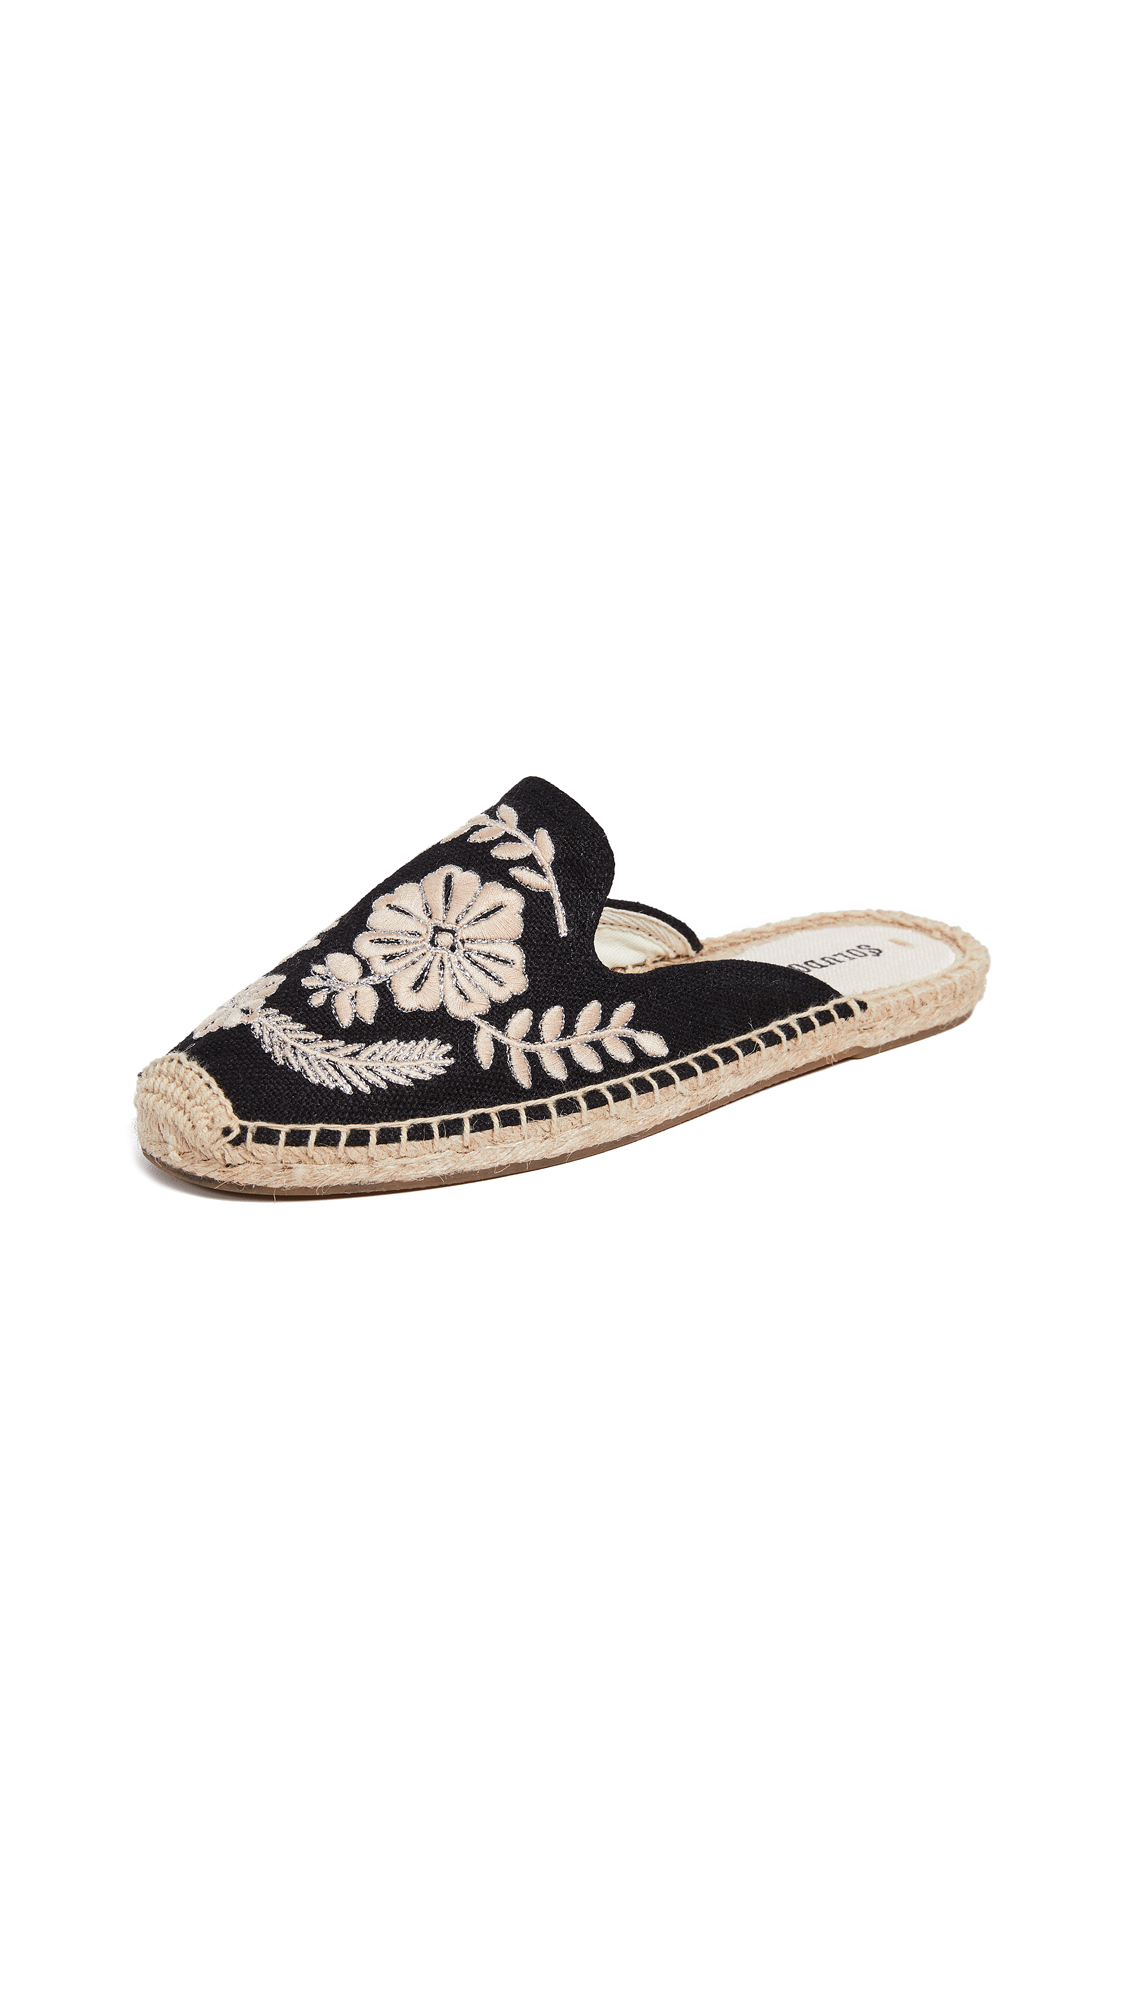 Tuilleries Embroidered Flat Mules in Black